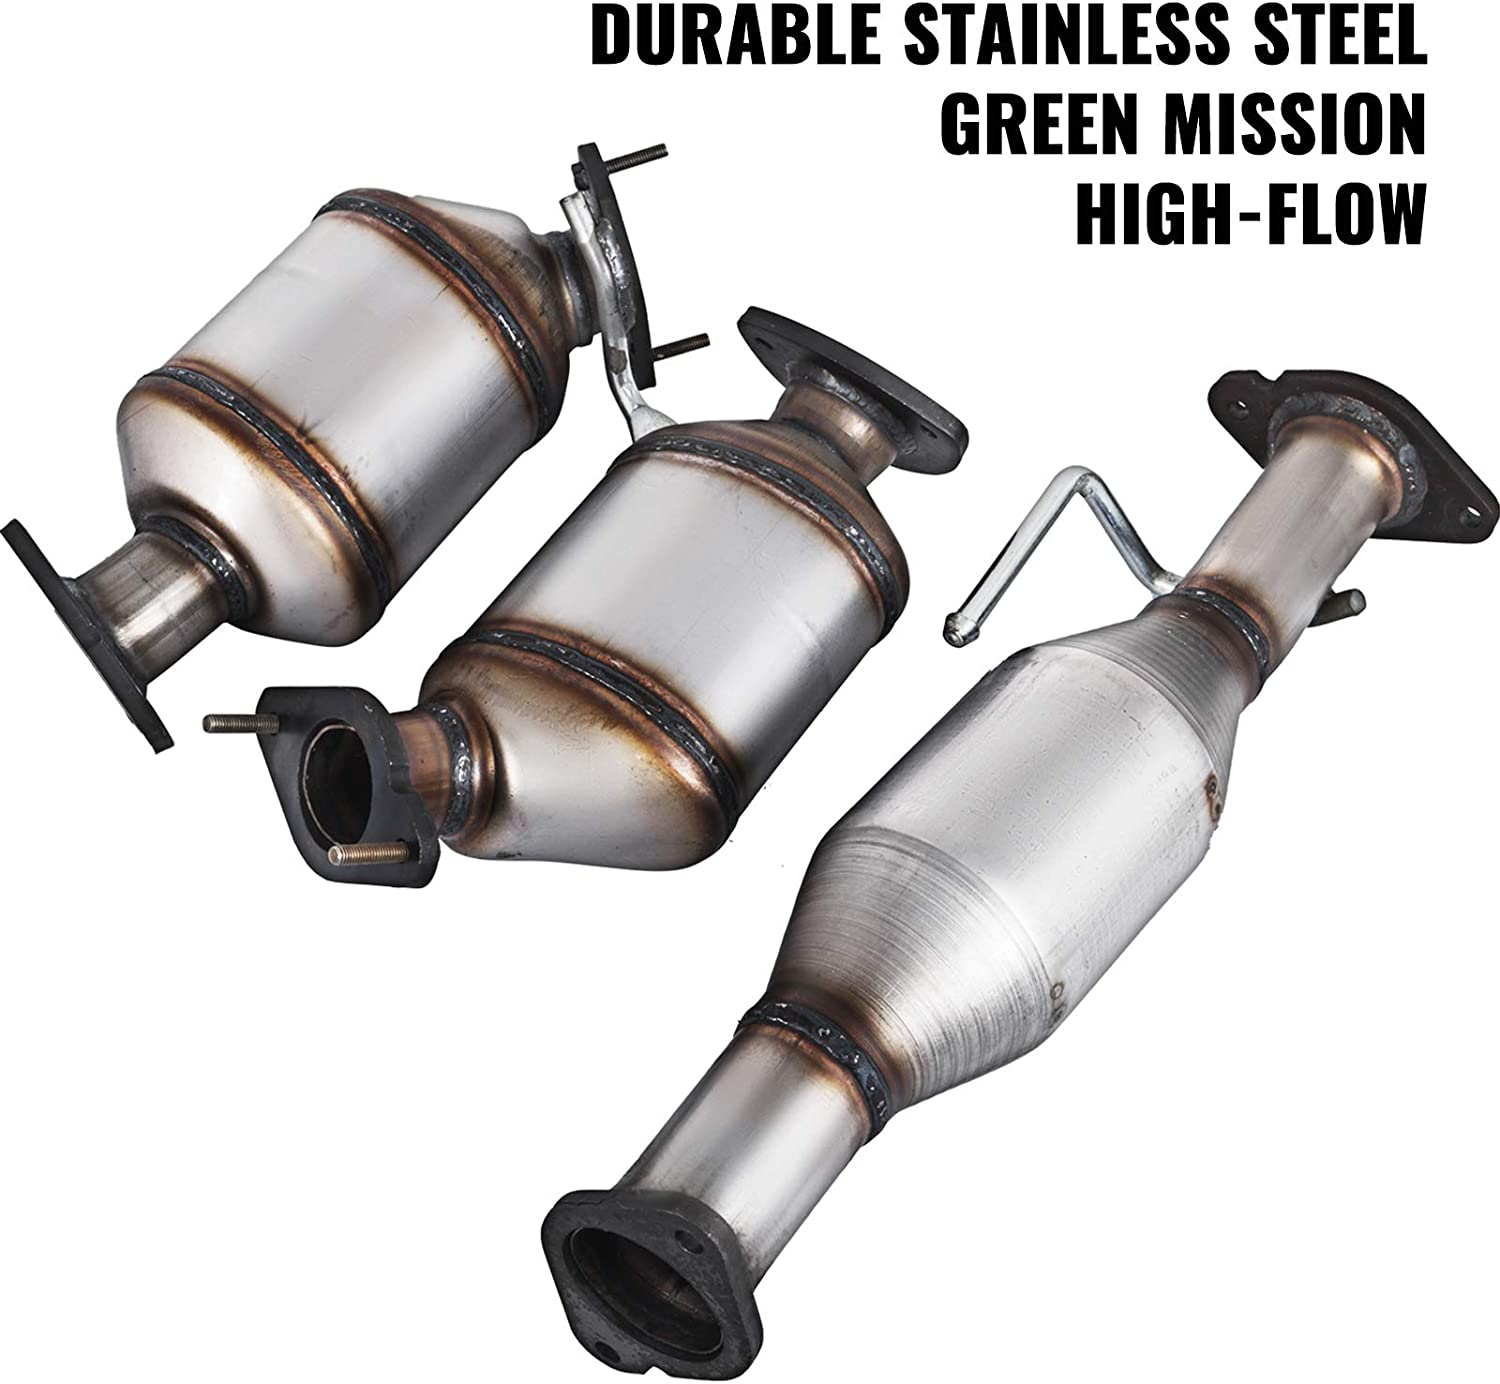 2007-2017 GMC ACADIA 3.6L CATALYTIC CONVERTER PASSENGER SIDE WITH GASKETS FITS